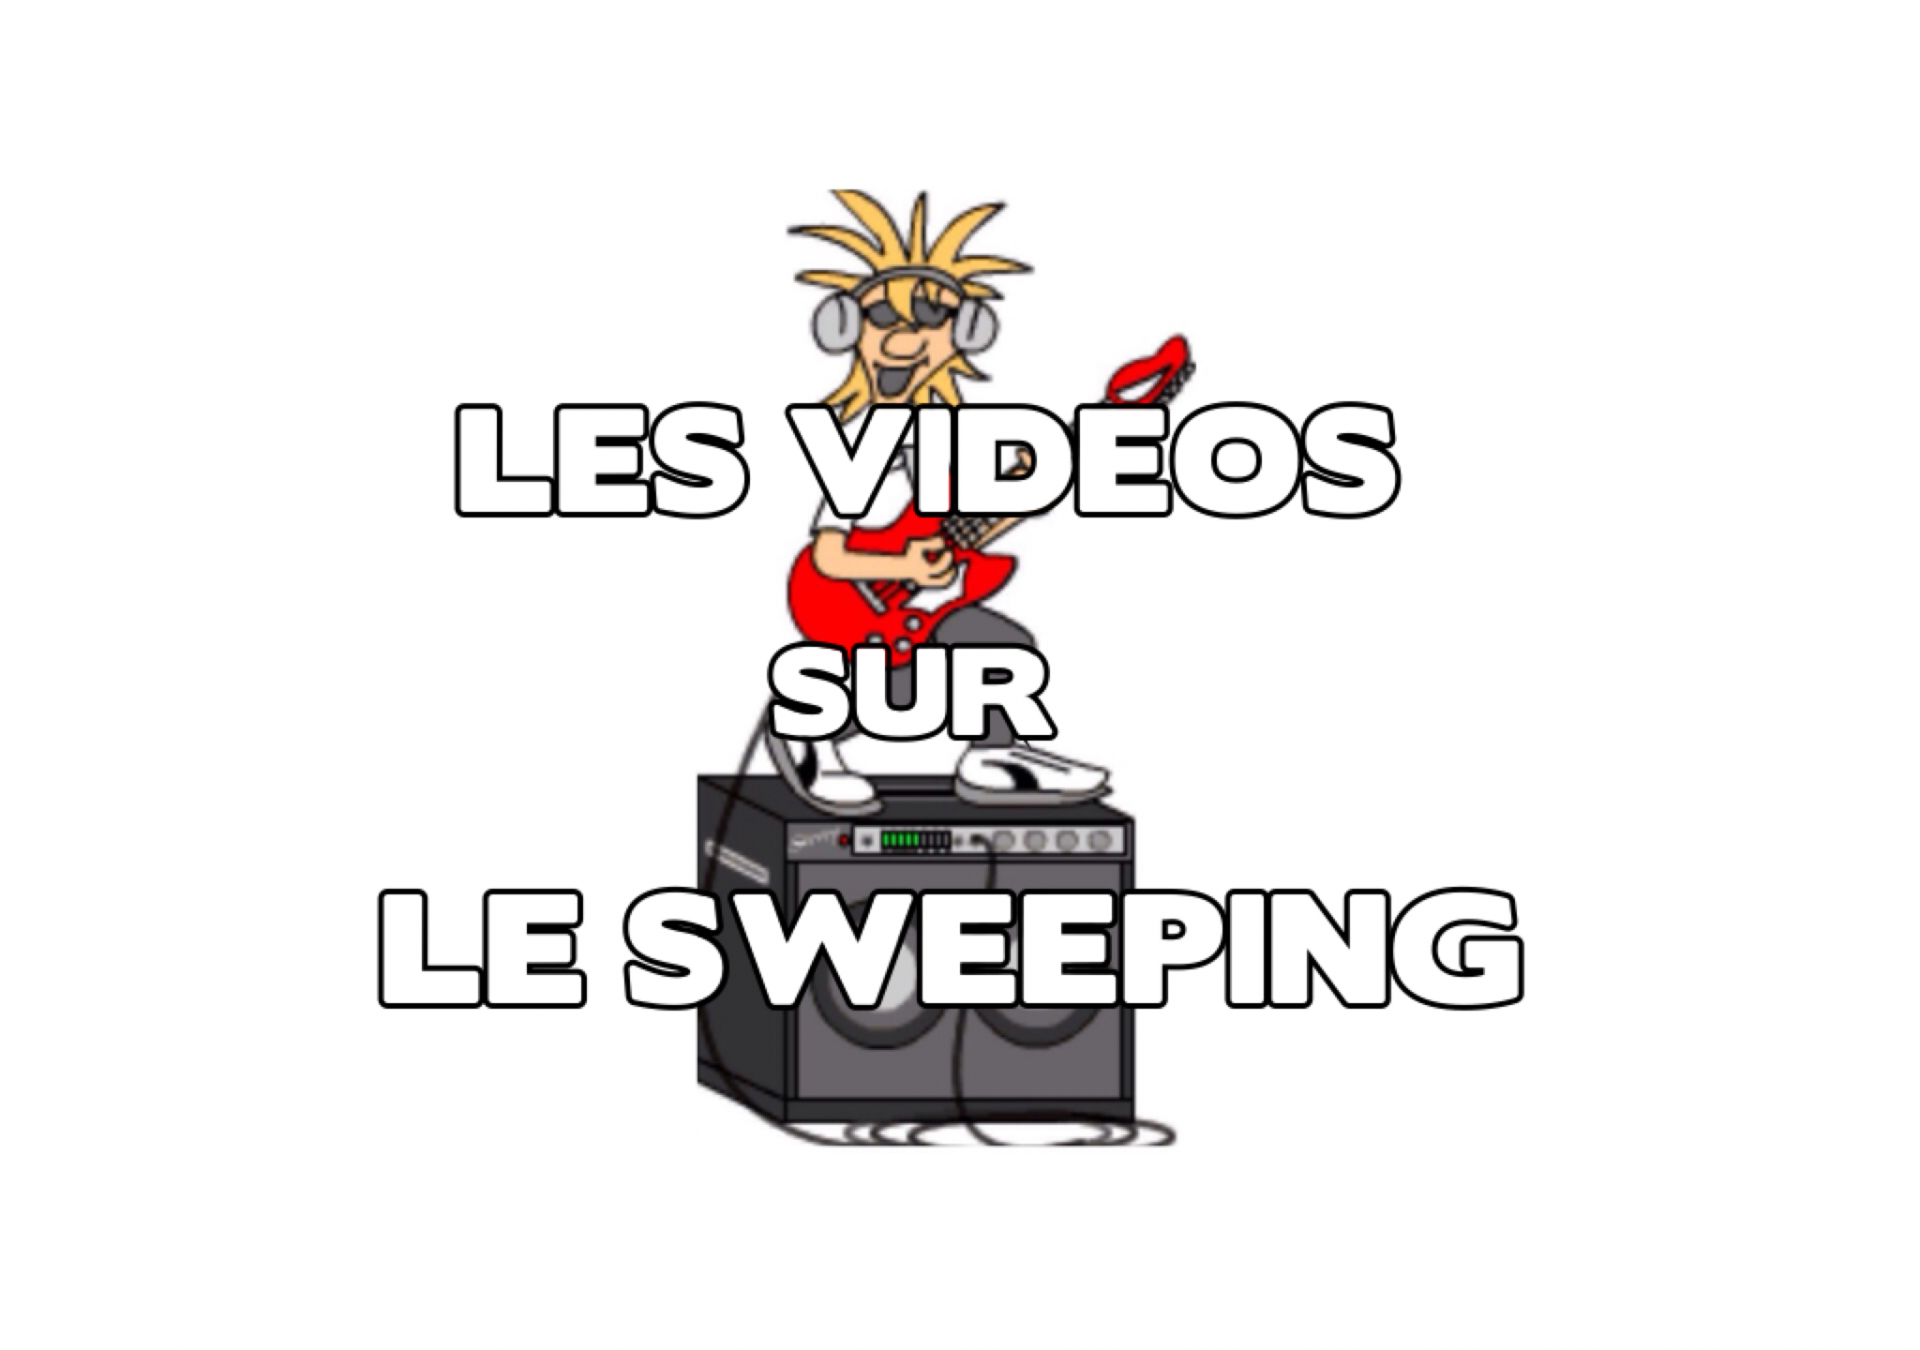 Les videos sur le sweeping